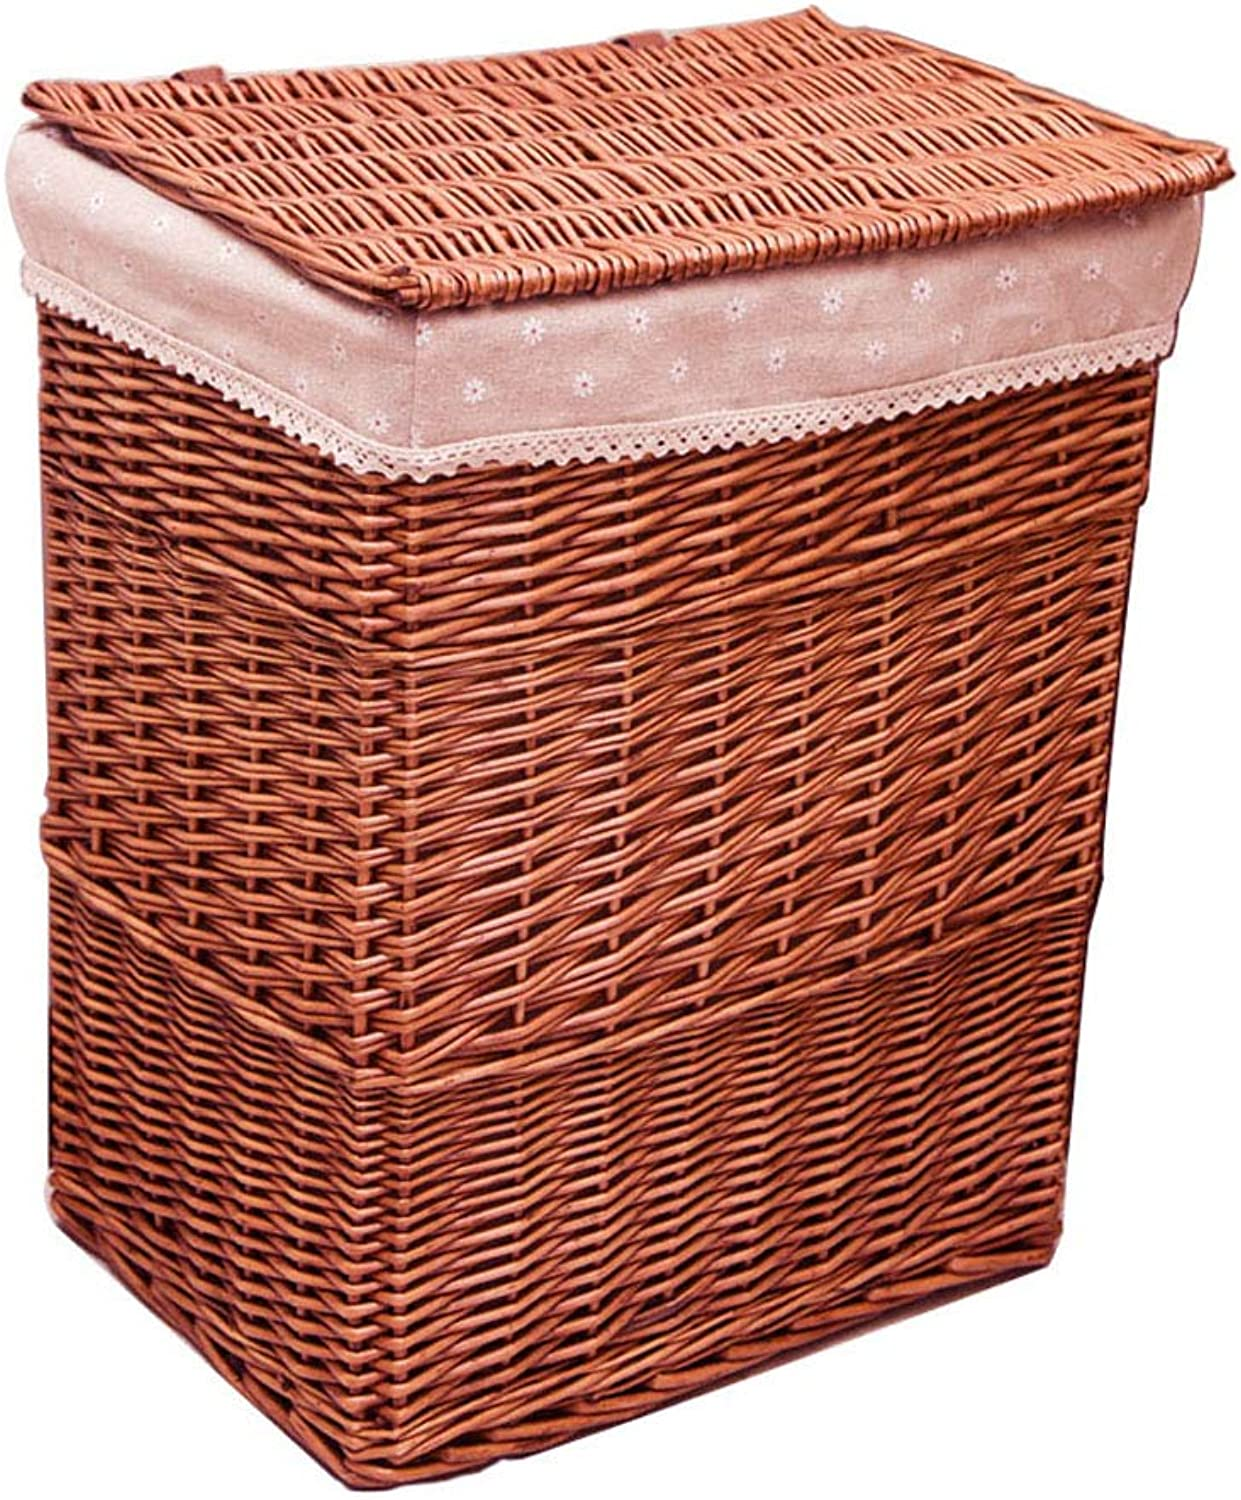 LF Rattan Storage Basket,Clothing Storage Box Wicker Woven Basket with Cover, for Bedroom Toilet (color   Brown)